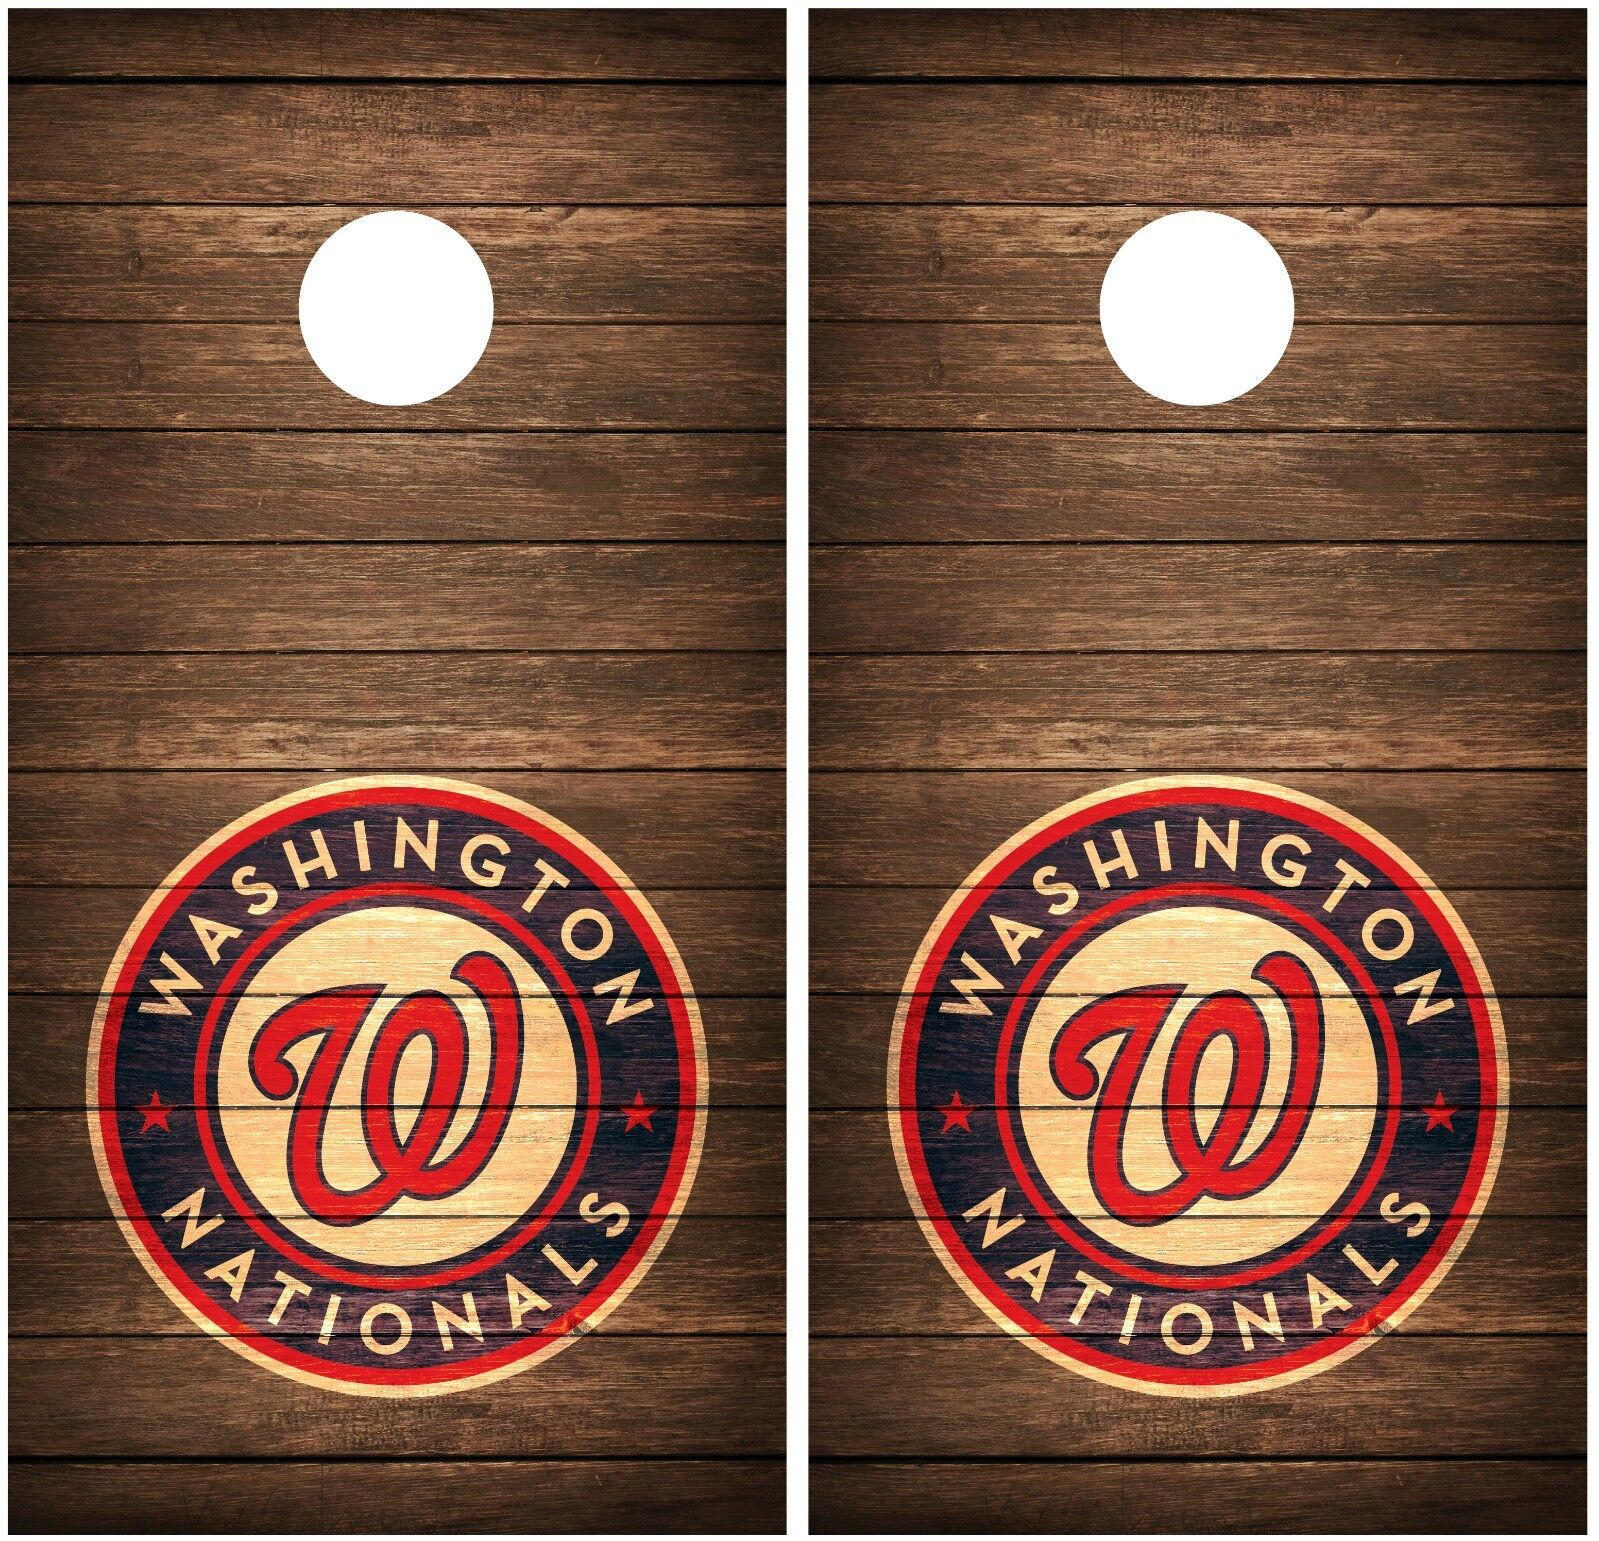 Washington Nationals Vintage Wood Cornhole Board Decal Wrap Wraps  (brown)  online at best price